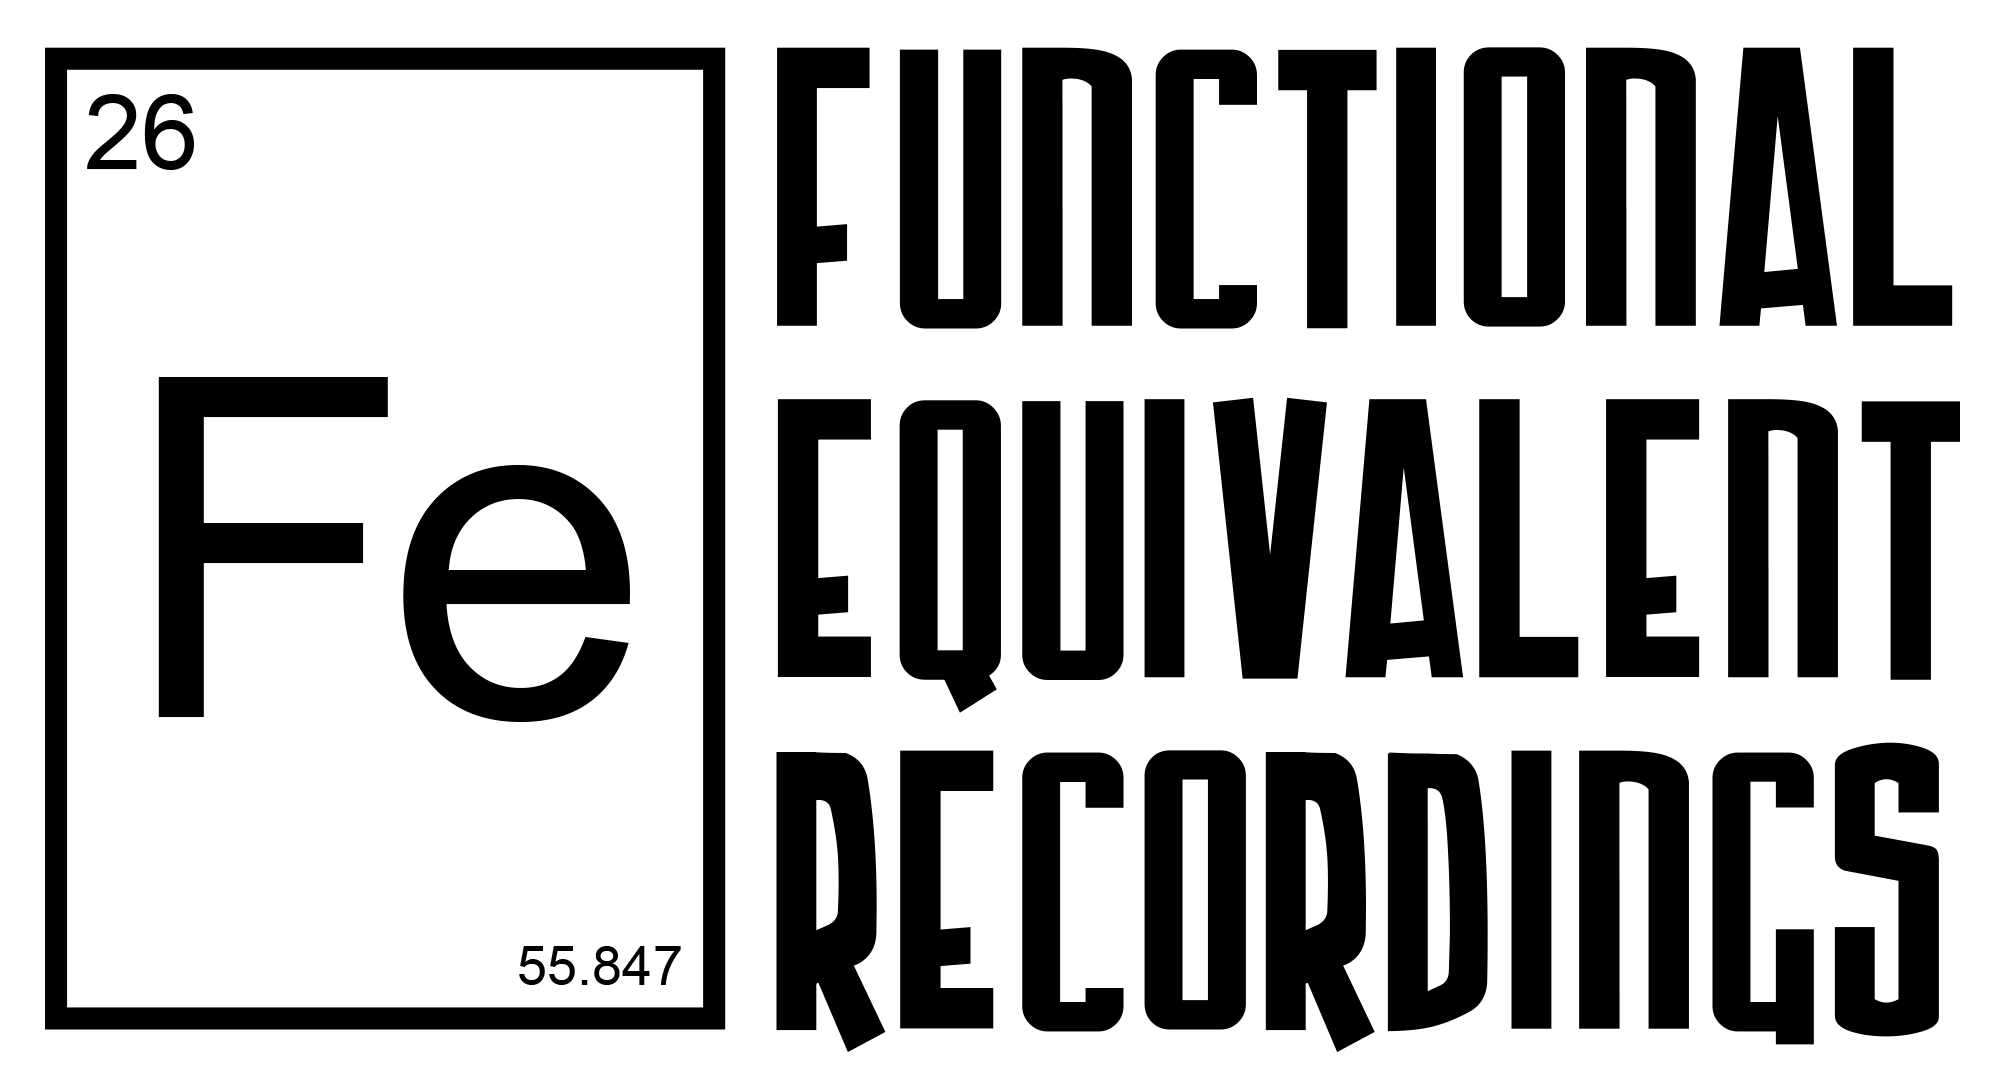 Functional Equivalent Recordings